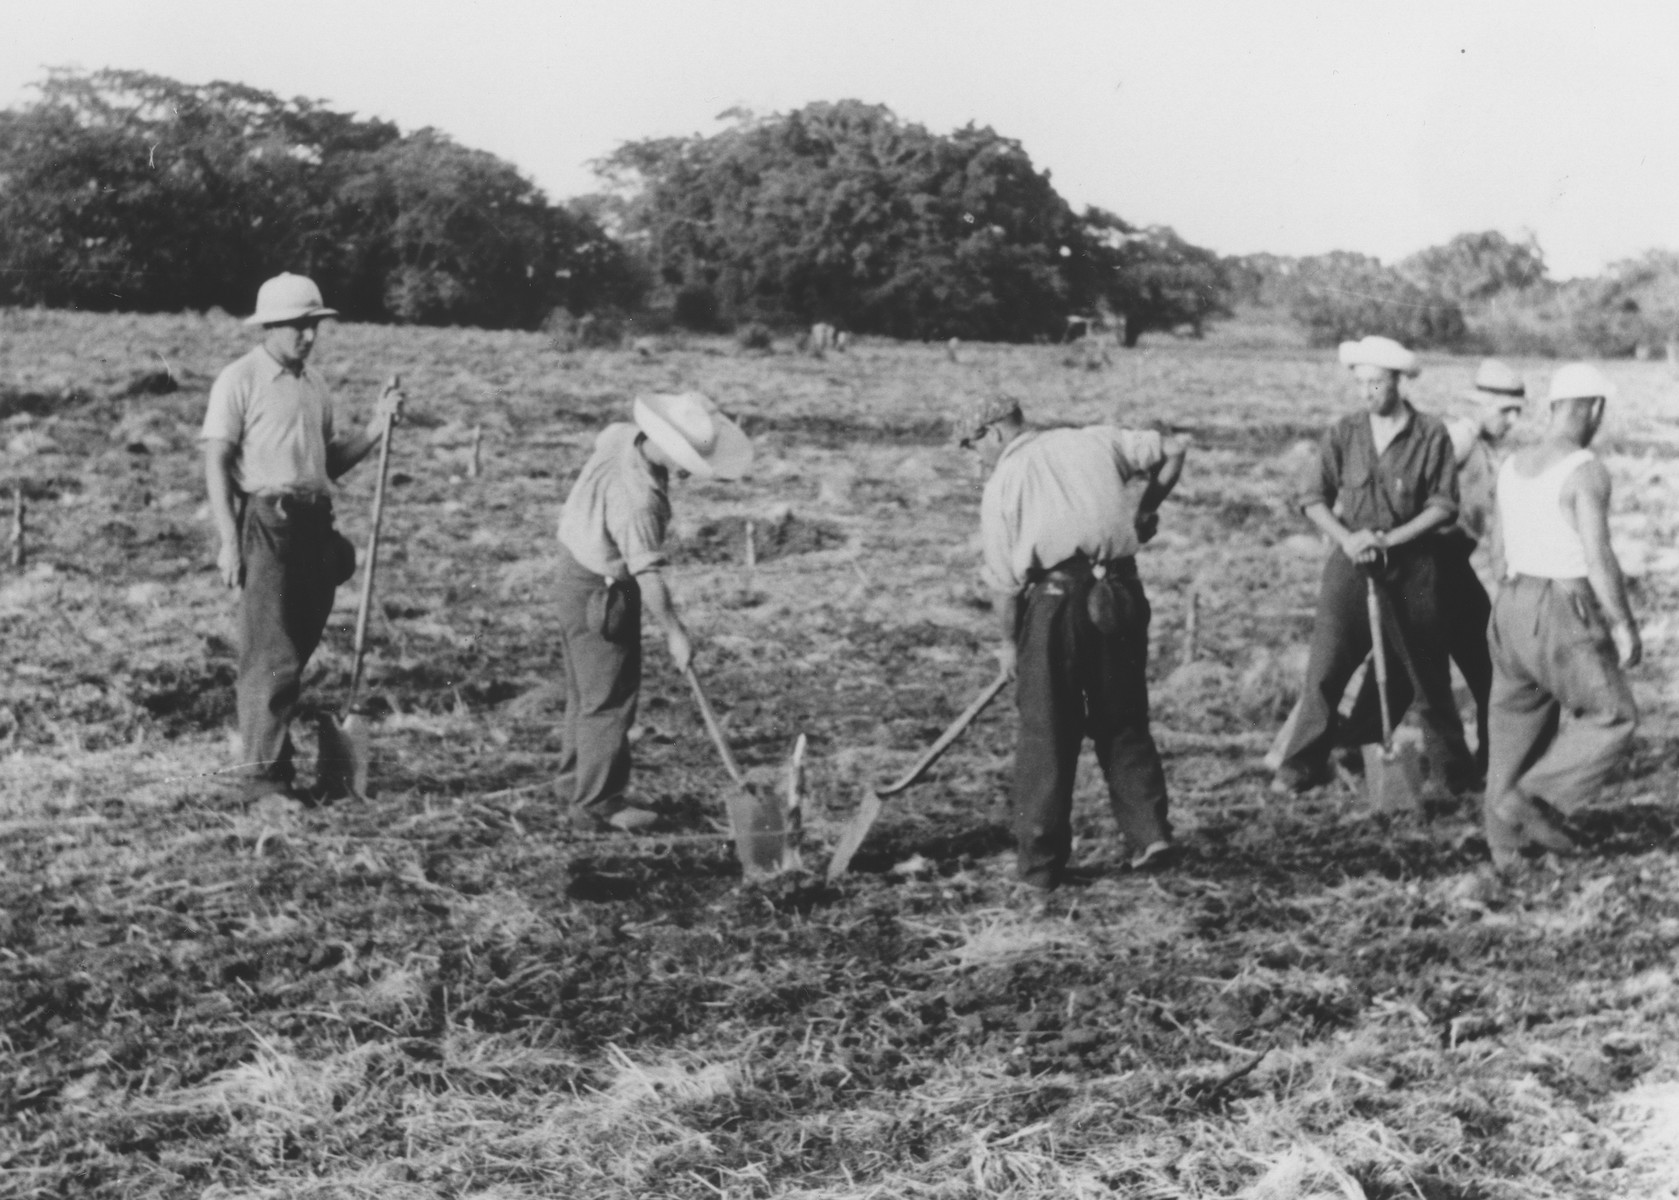 Jewish refugees at work in the fields of the Sosua agricultural settlement.